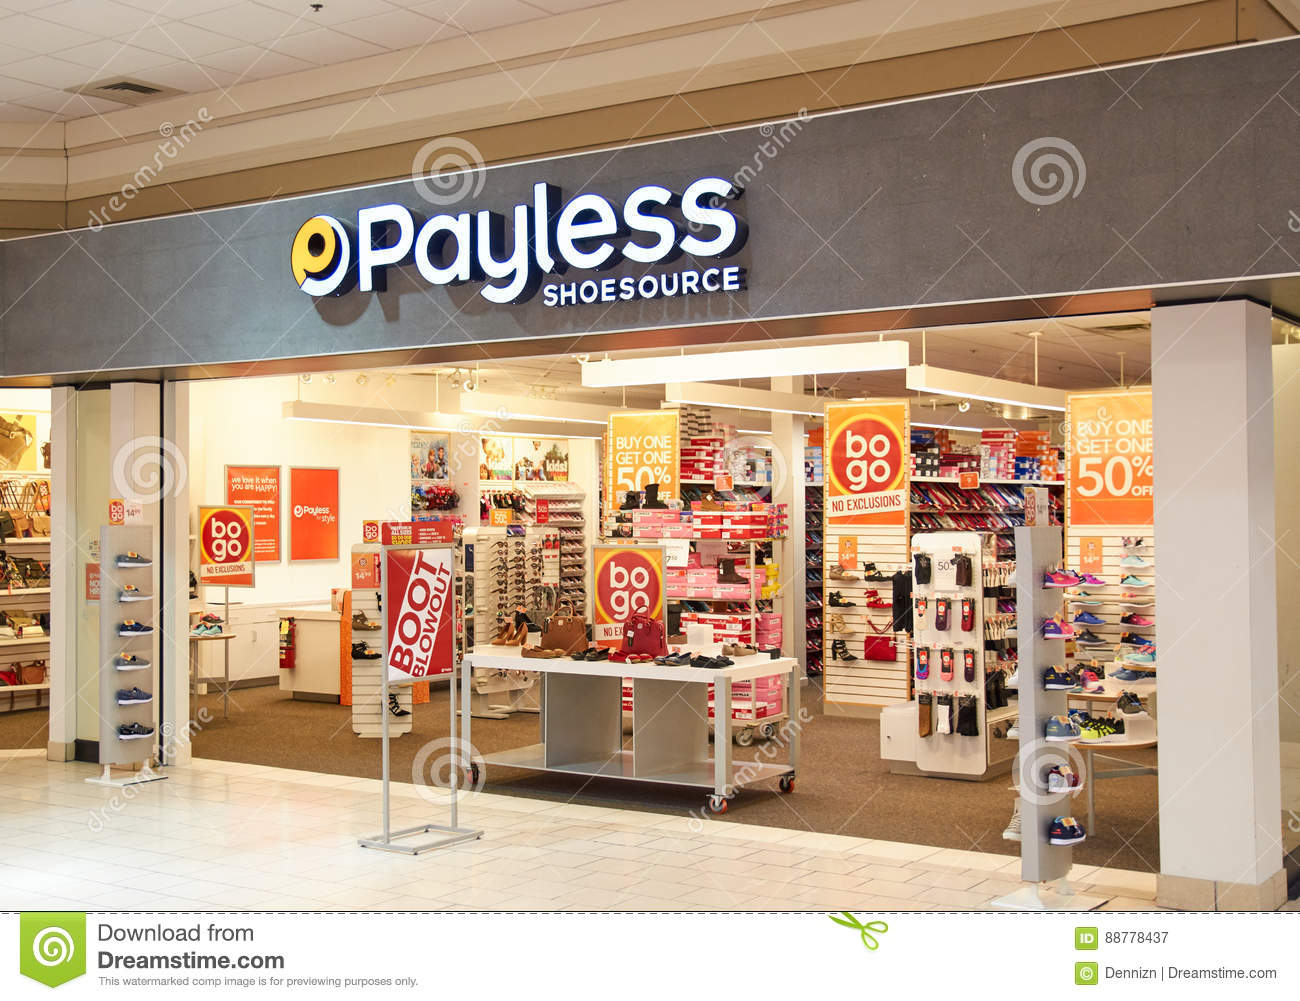 Payless ShoeSource bootique.